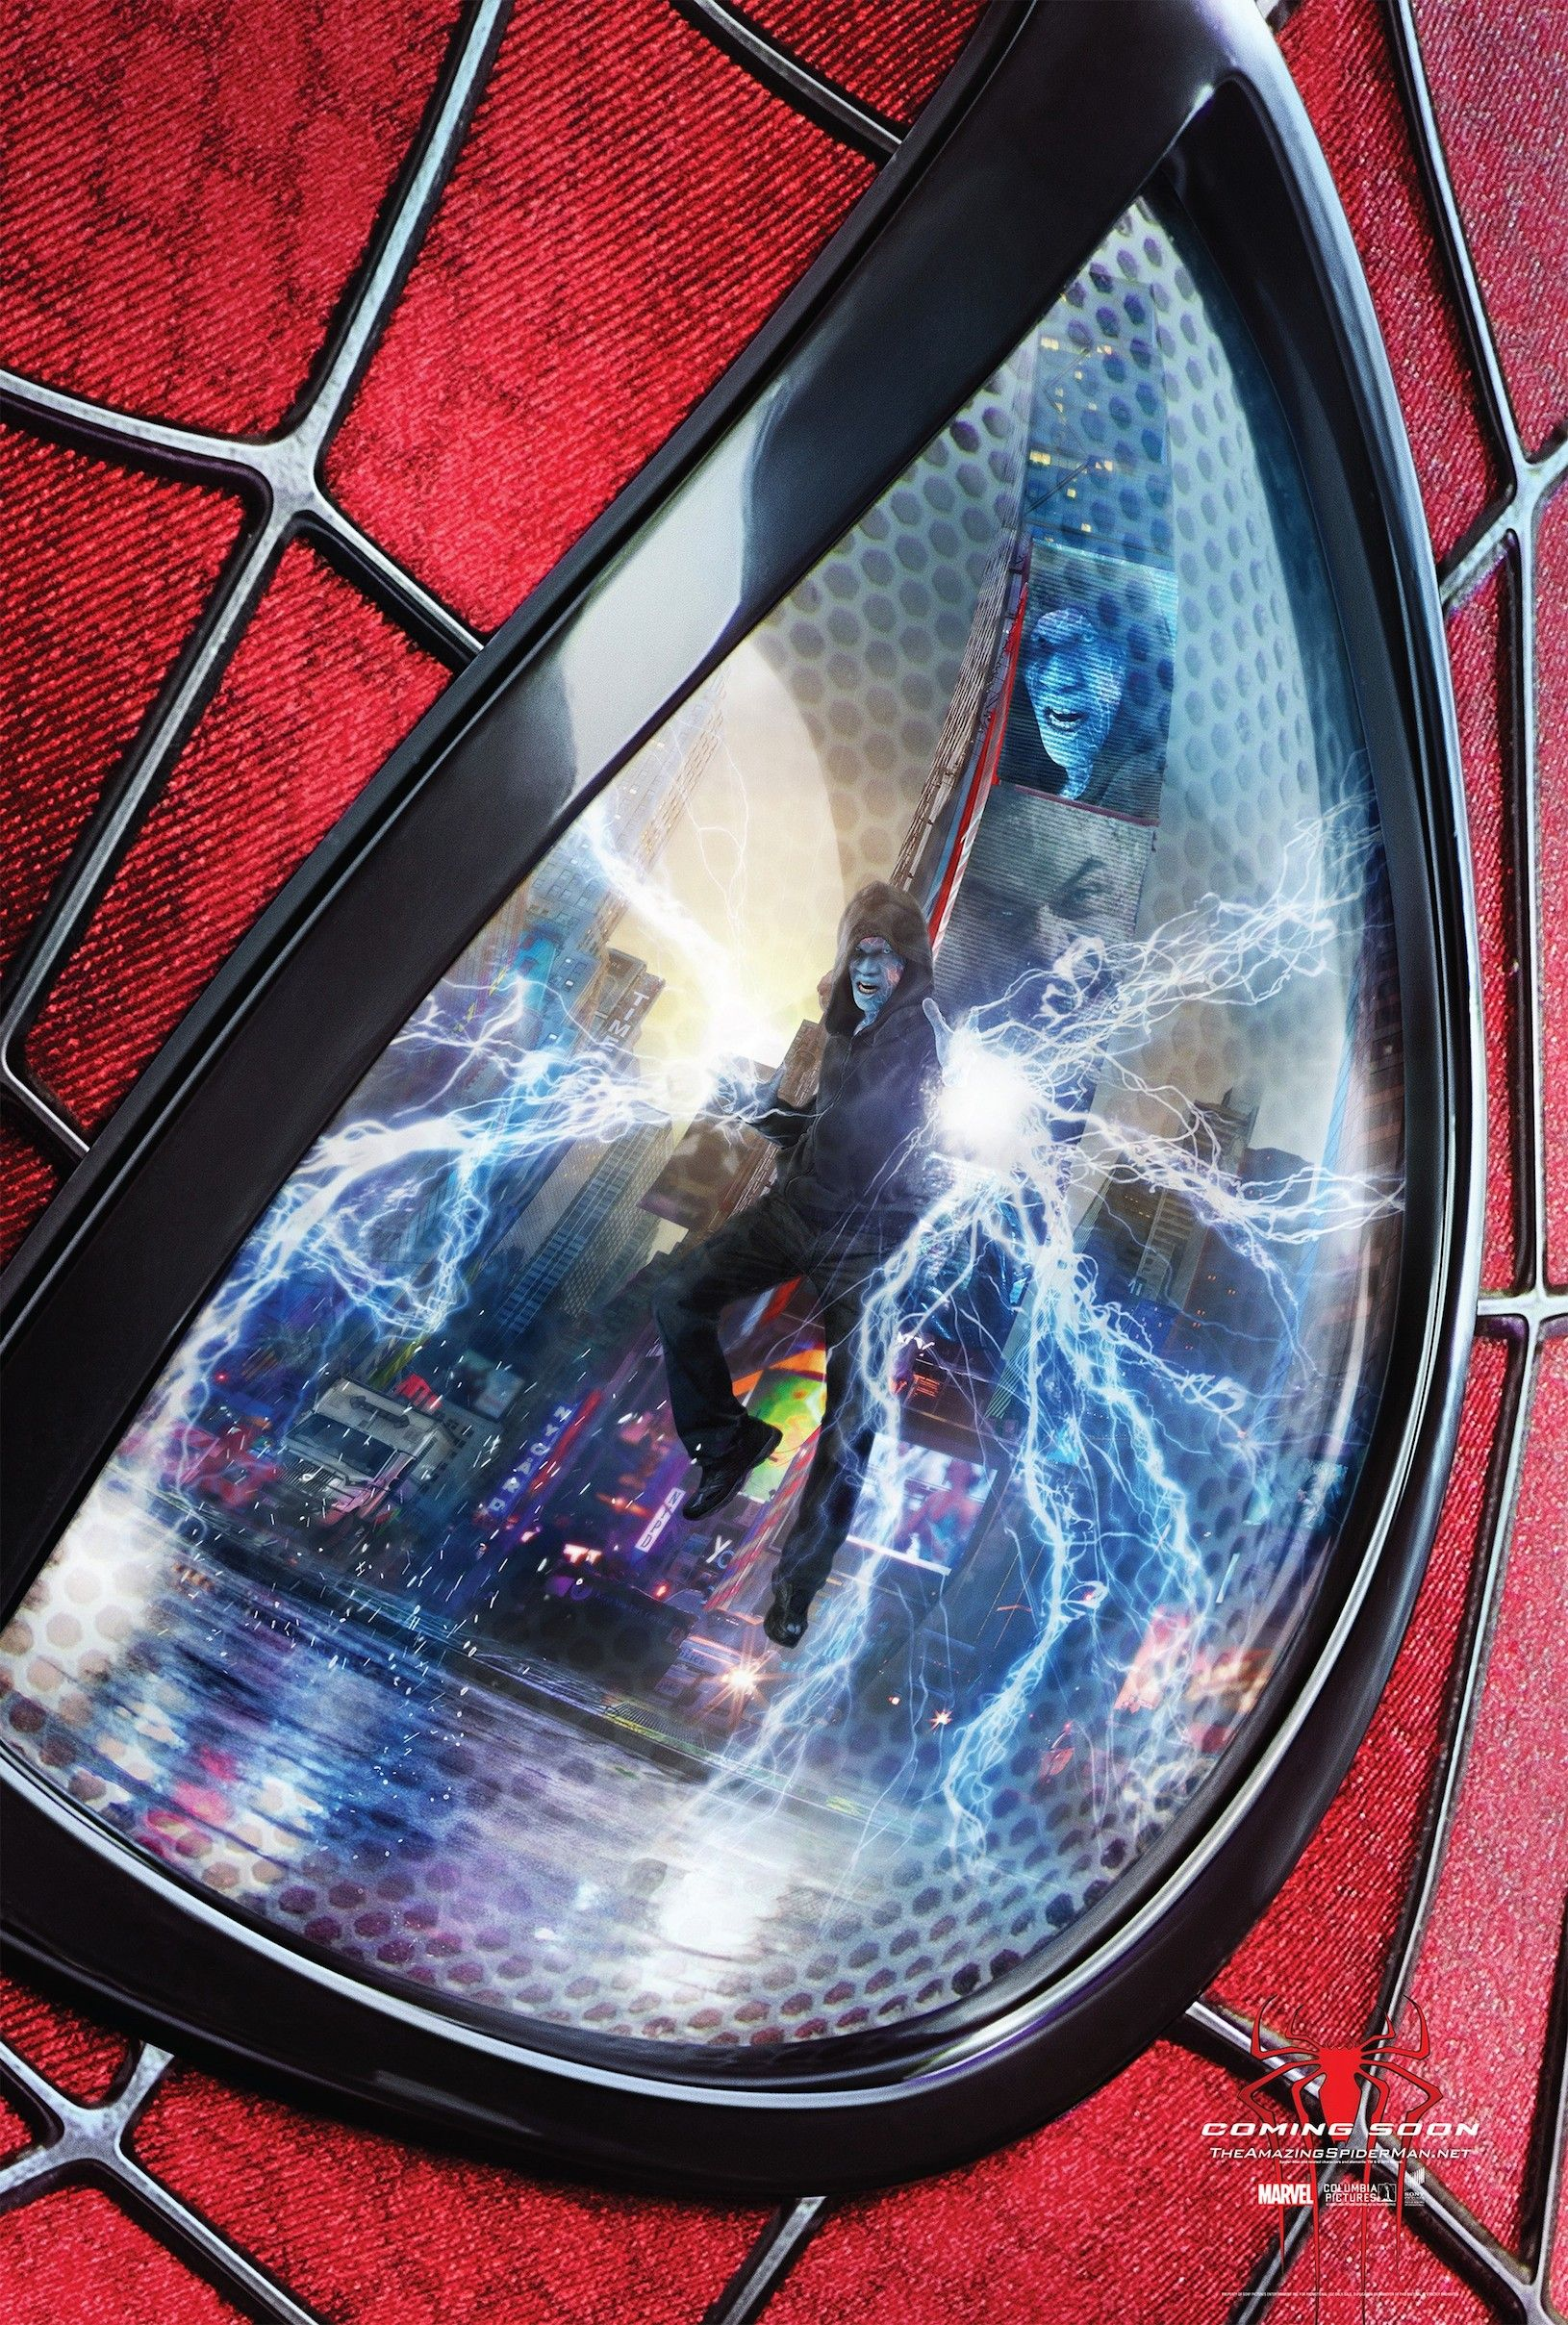 The Amazing Spider Man 2 Intl Poster2 (1630 2417)